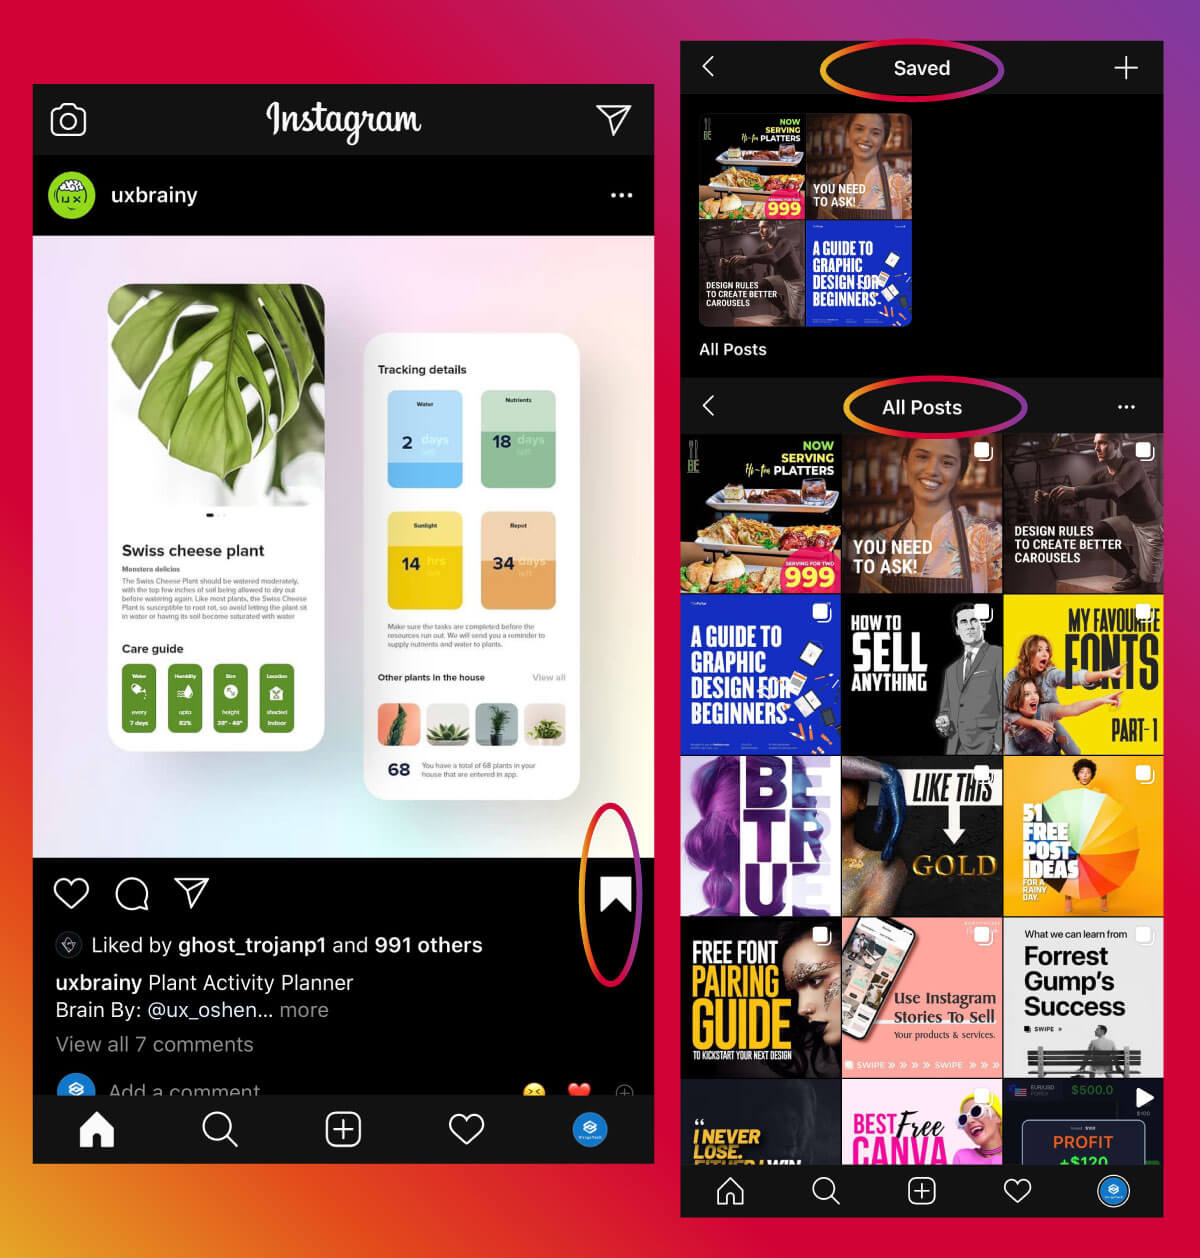 Instagram Marketing Strategy - Saved Posts